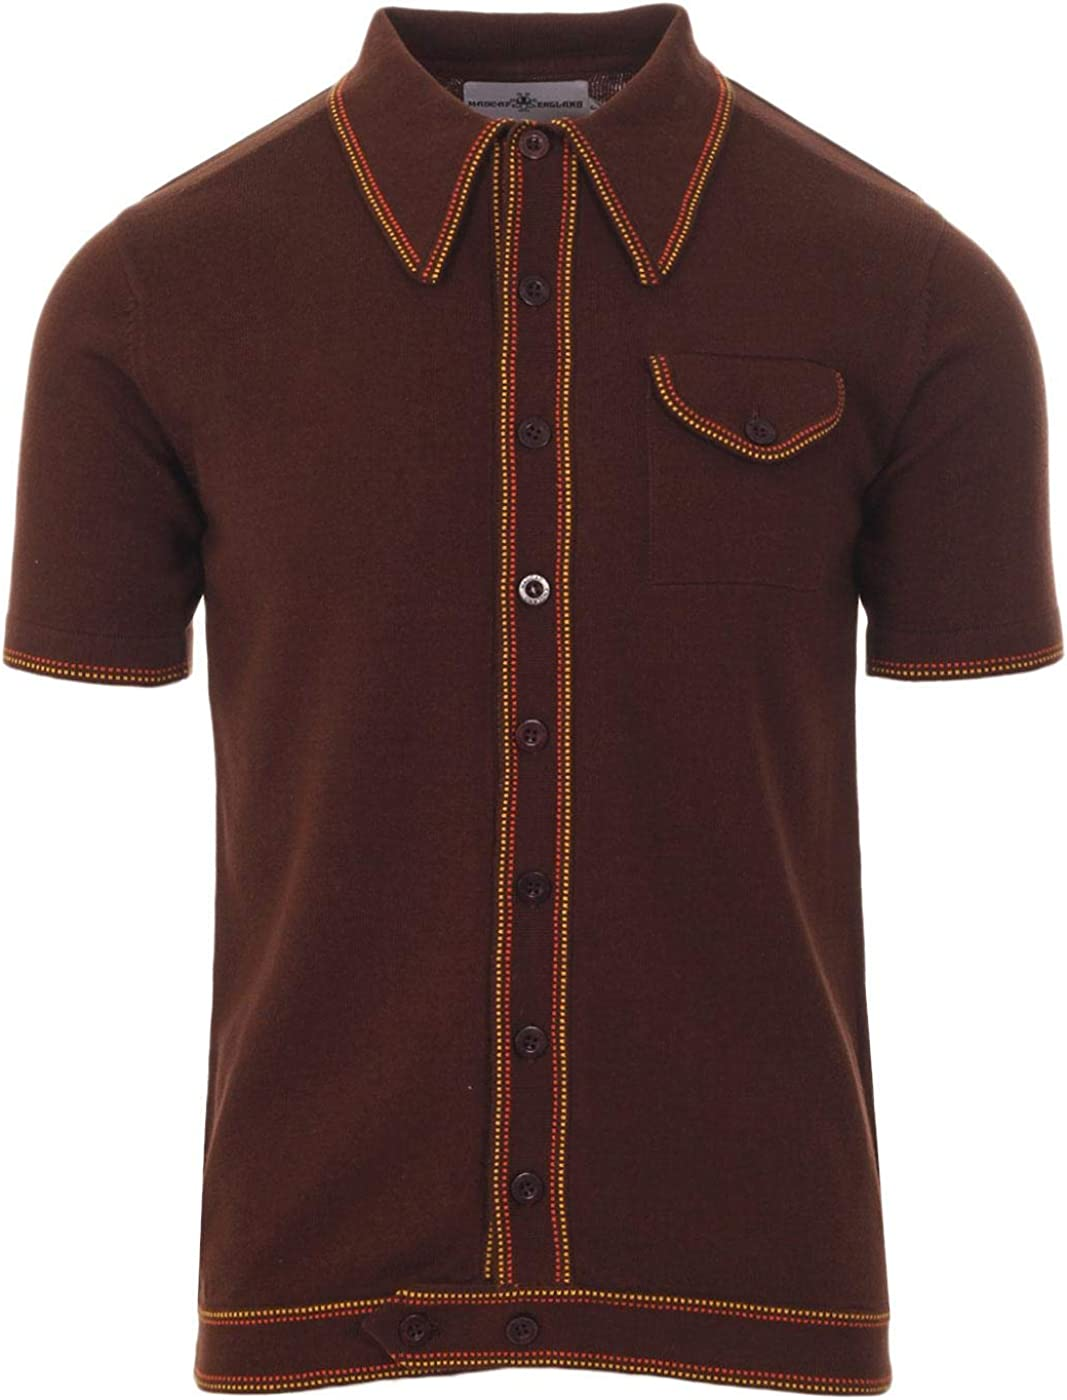 60s 70s Men's Clothing UK | Shirts, Trousers, Shoes Madcap England Crawdaddy Micro Dash Knit Polo Caramel MC166 £34.99 AT vintagedancer.com